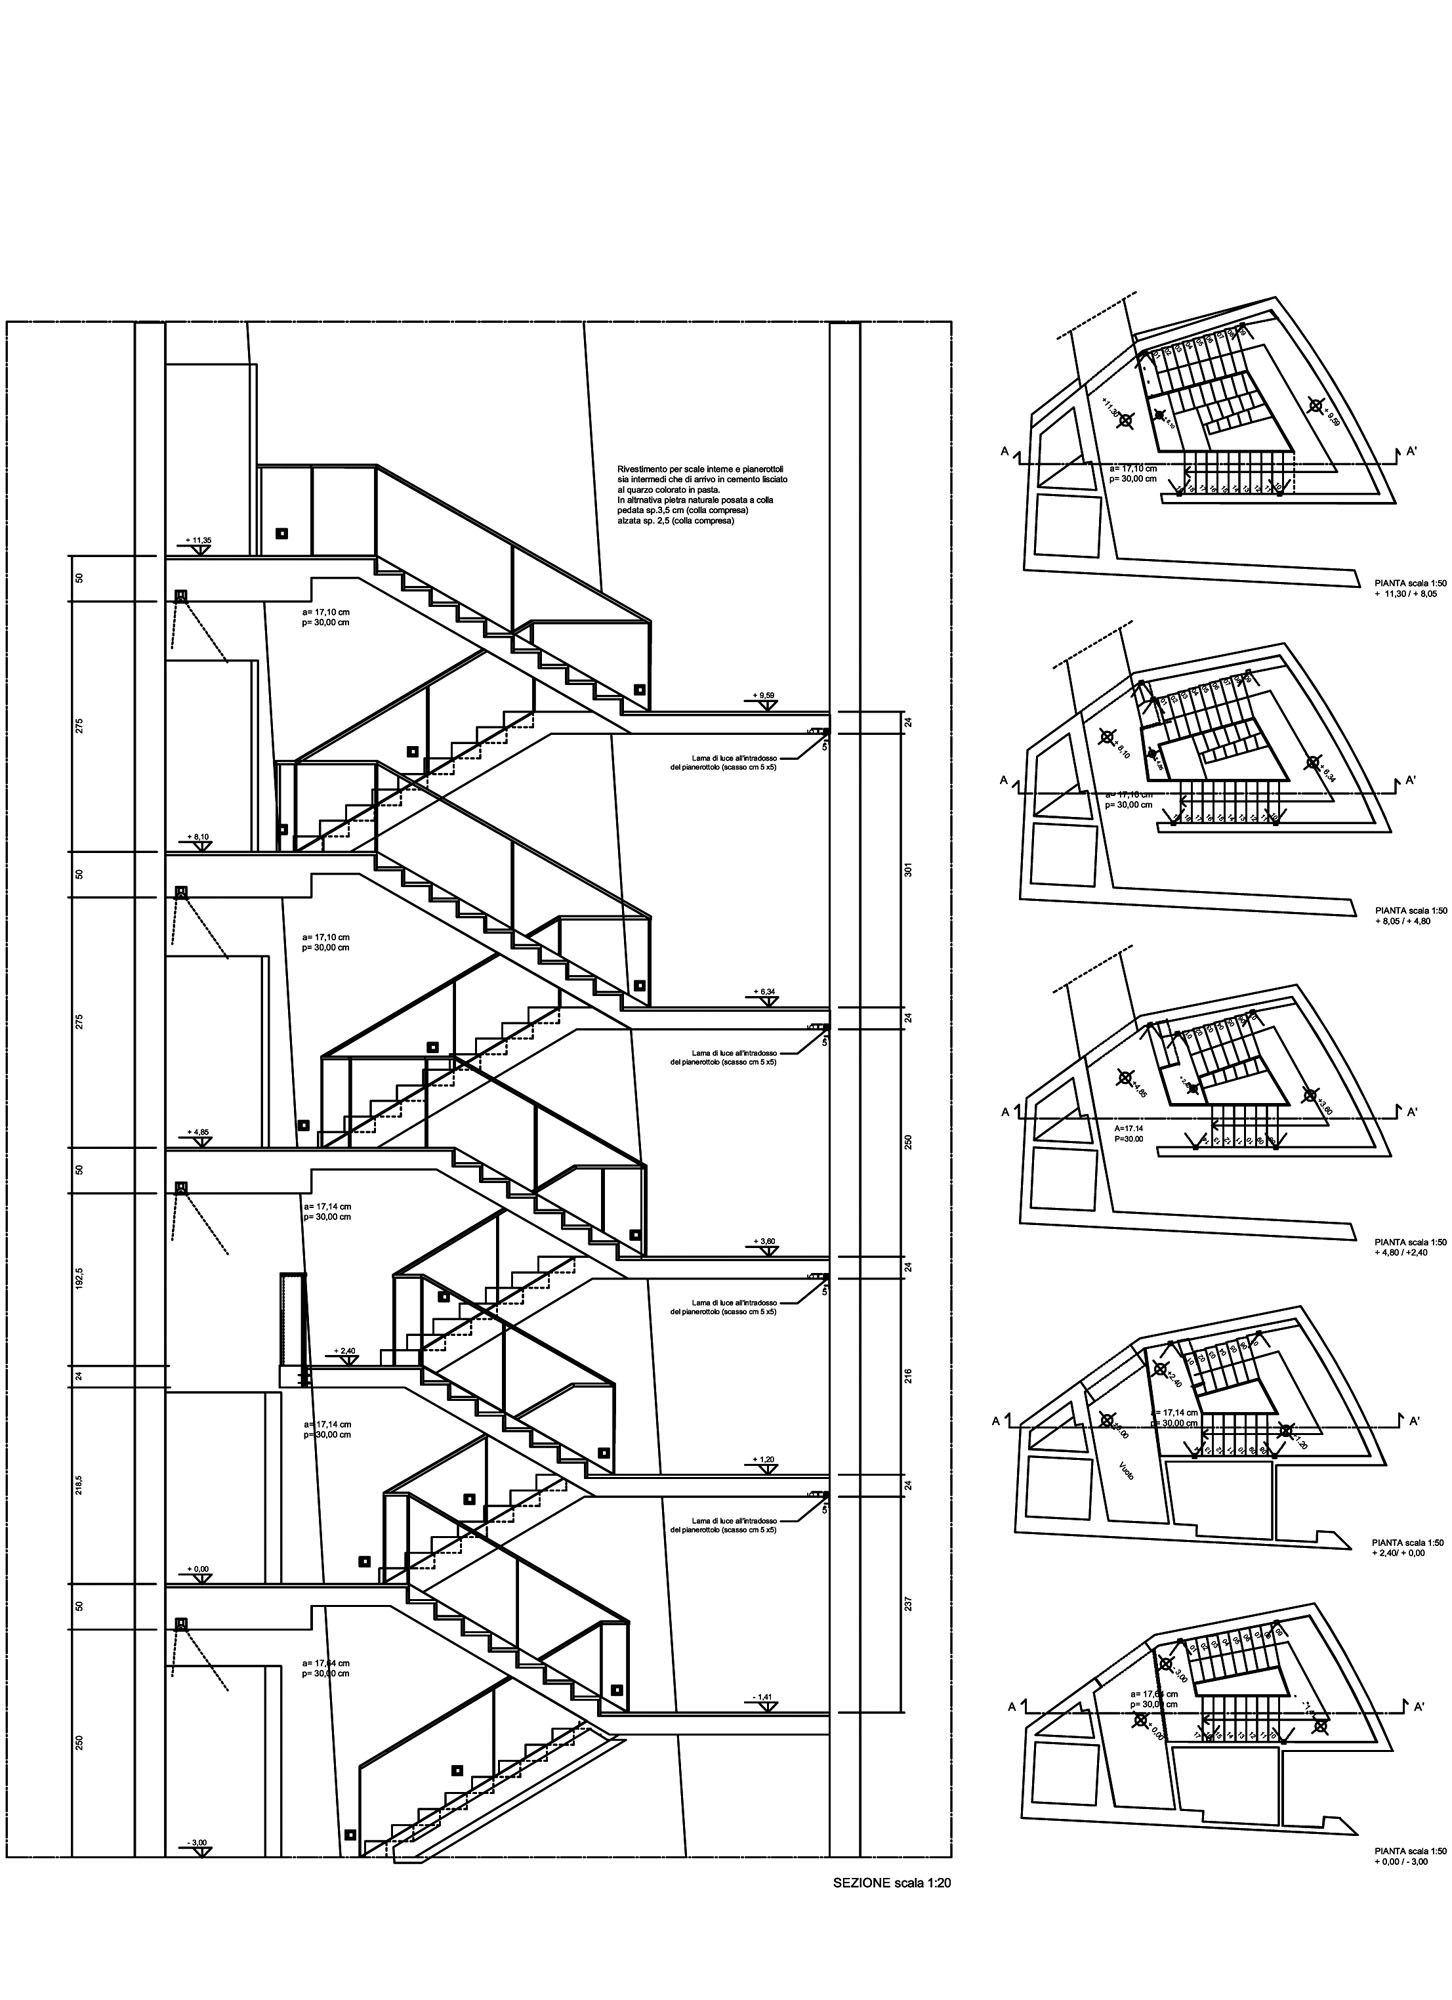 ex ducati mario cucinella architects construction documents construction drawings stairs diagram orthographic [ 1452 x 2000 Pixel ]